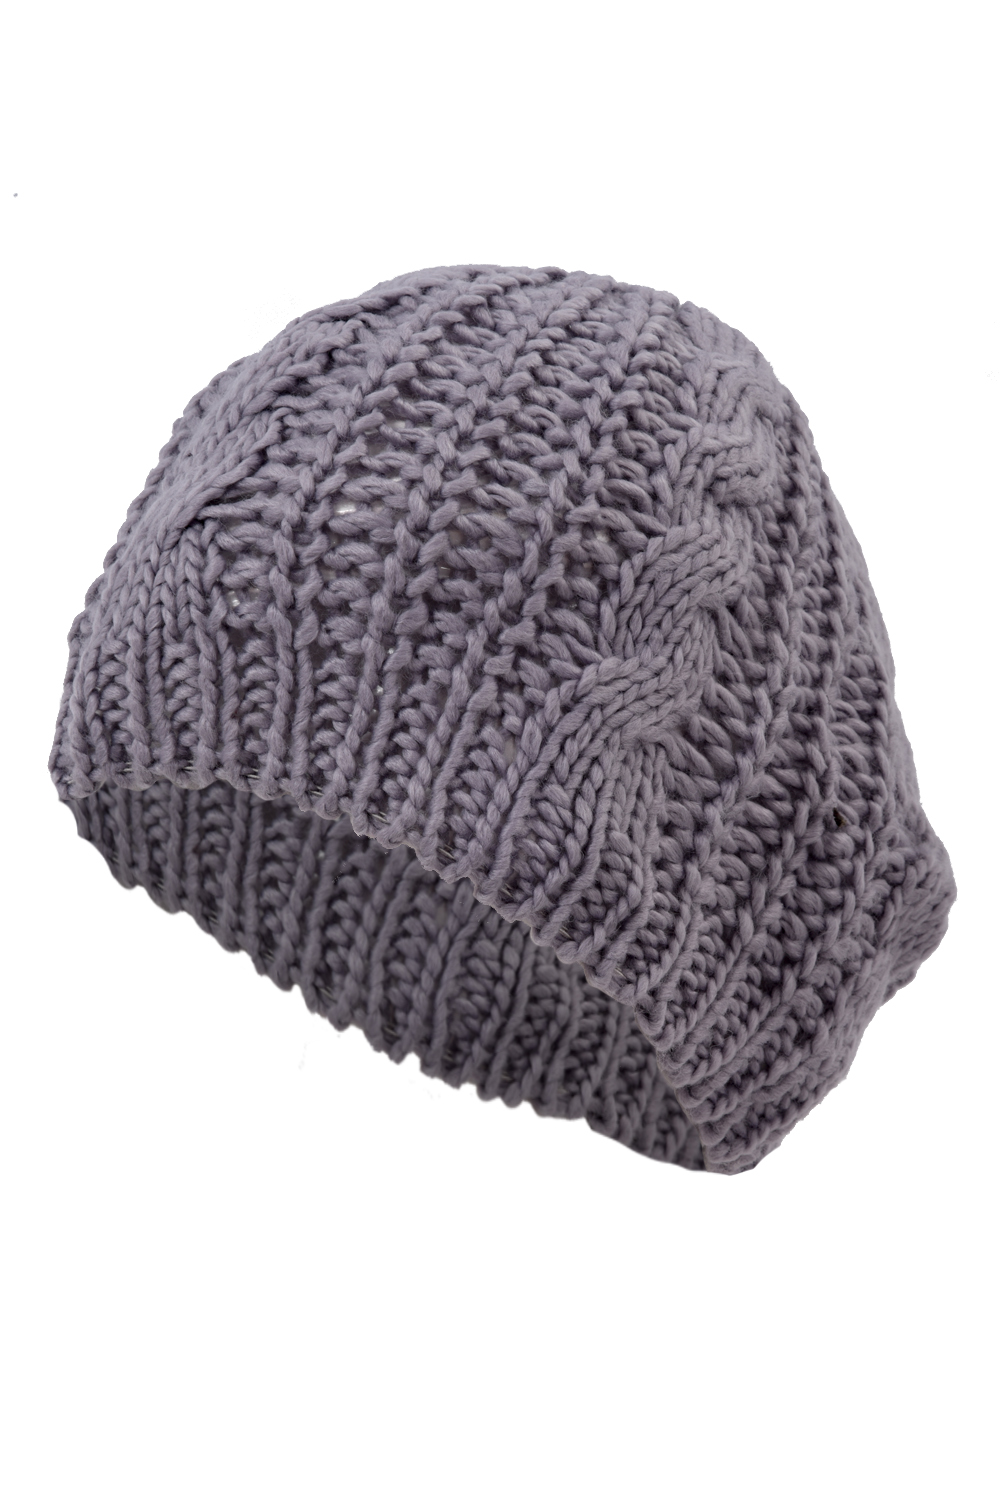 2017 NEW  Braided Baggy Beanie Crochet Knitting Warm Winter Wool Hat Cap for Women 2017 new wool grey beanie hat for women warm simple style bad hair day knitting winter wooly hats online ds20170123 x24